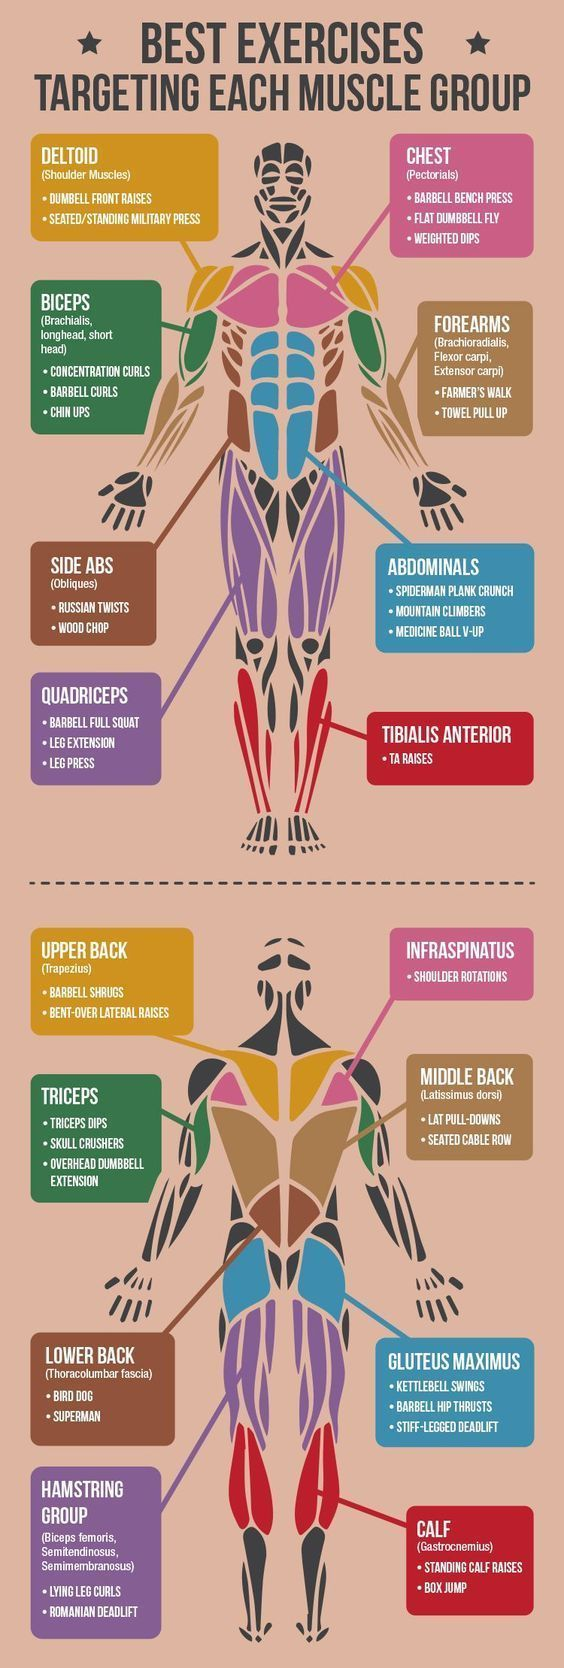 workout for muscle